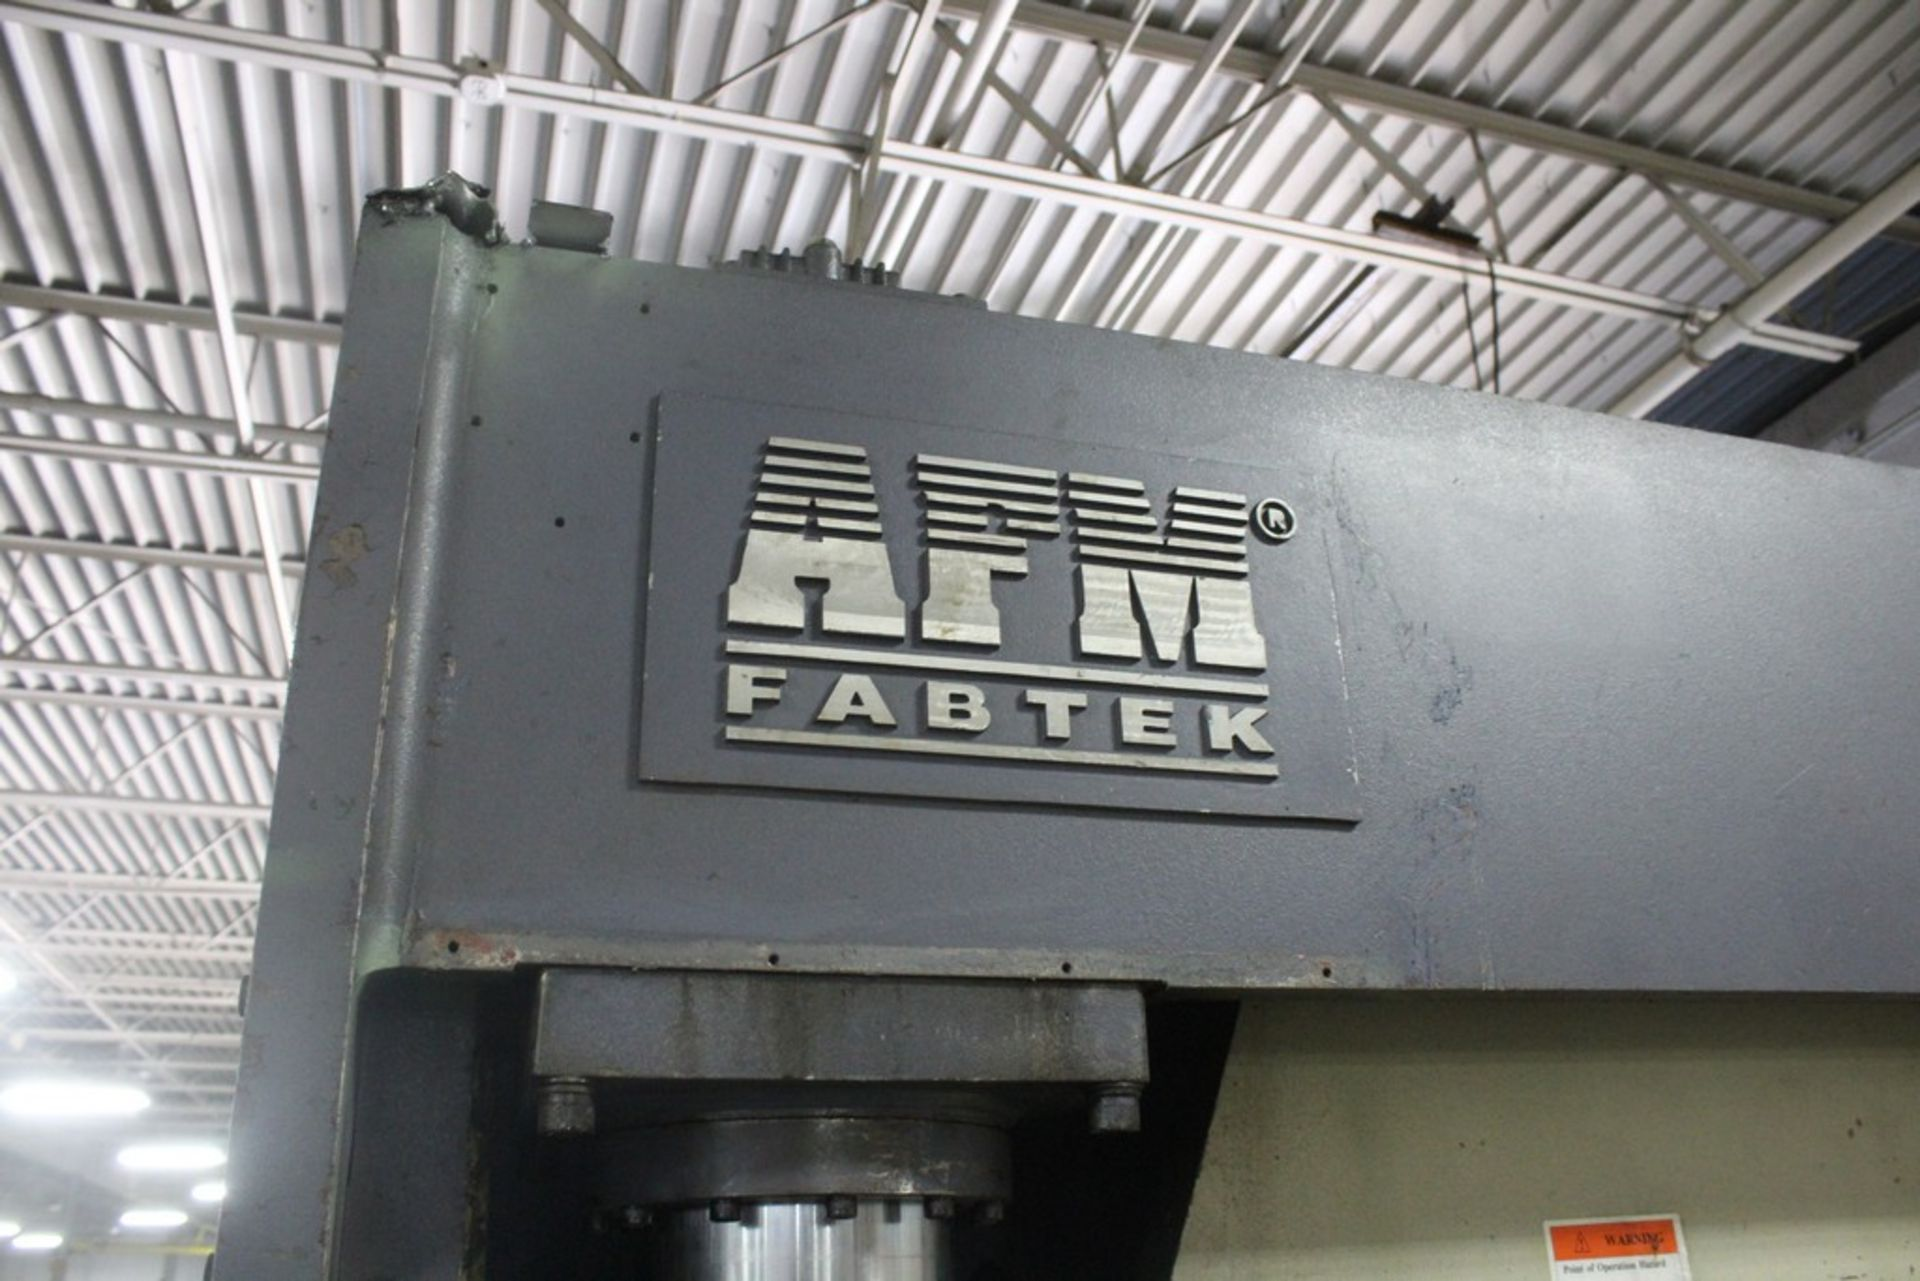 AFM Fabtek Model MPF31-165 Hydraulic Power Press Brake, Serial Number: CHPB9-90080T 165 Tons - - Image 4 of 8